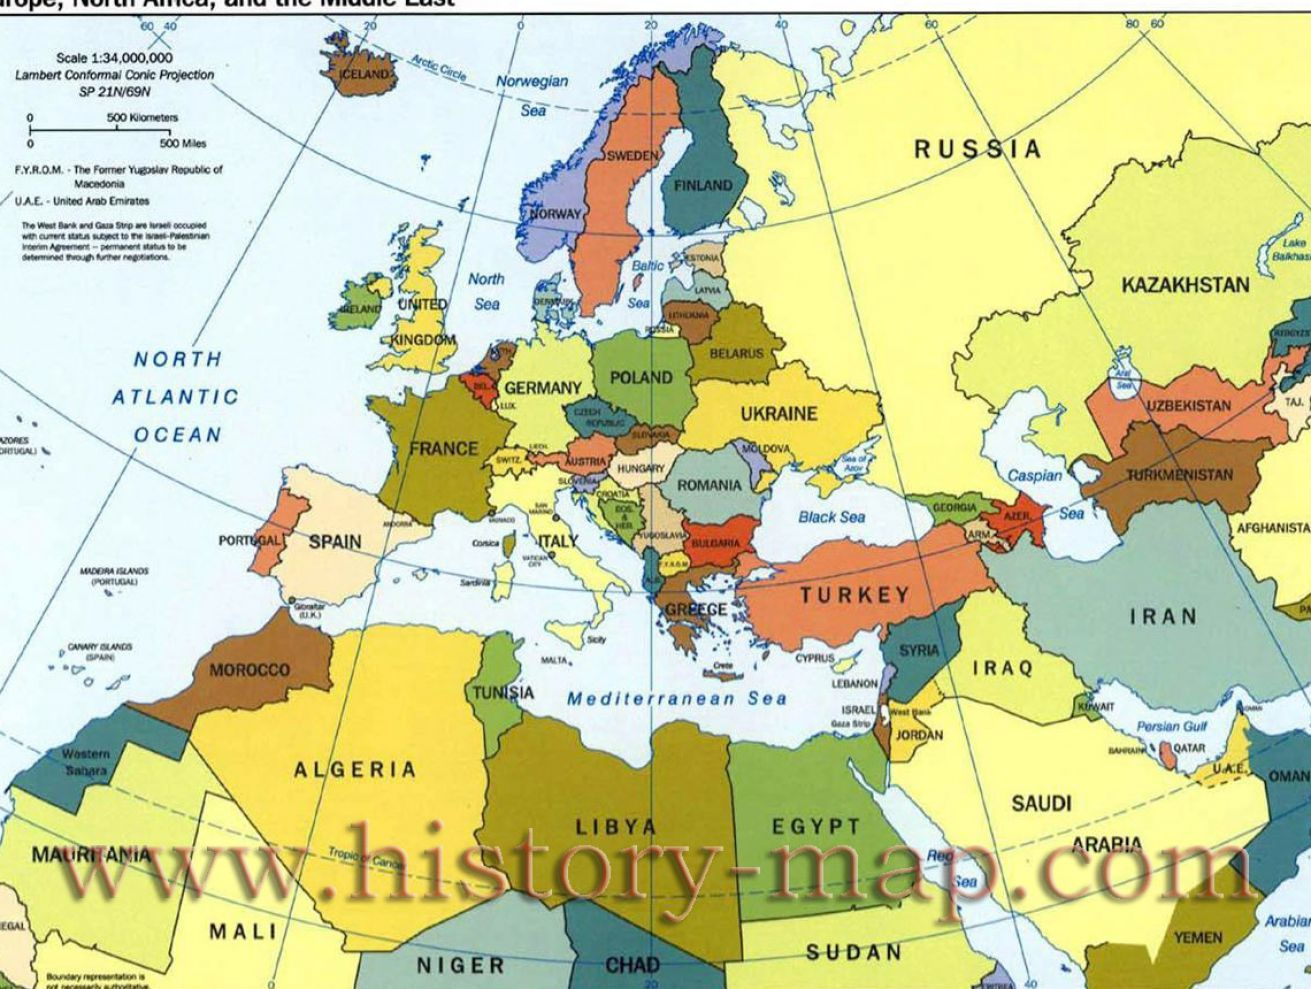 North Africa Sometimes Grouped With The Middle East